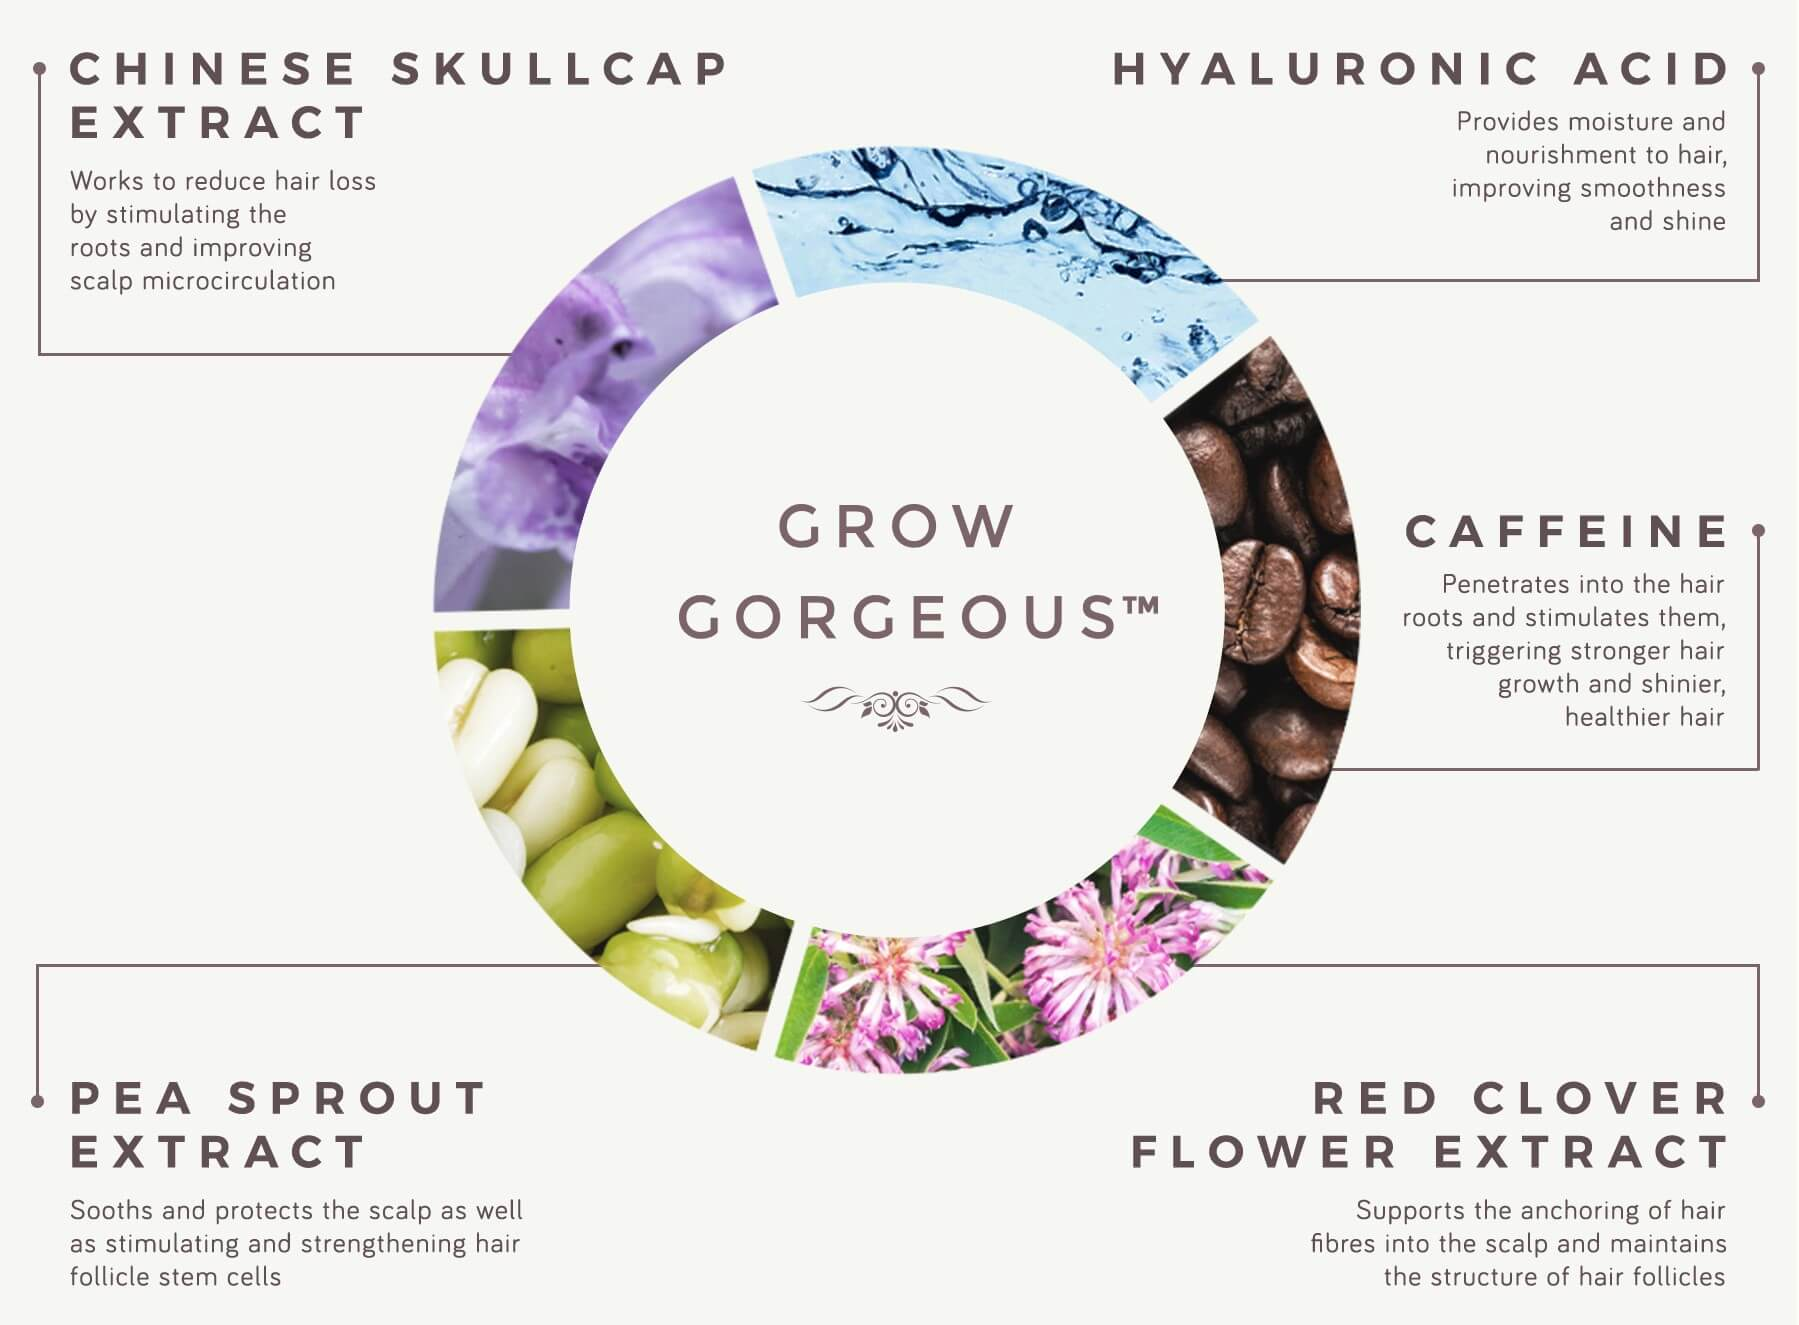 THE SCIENCE BEHIND THE SERUMS   OUR CORE INGREDIENTS